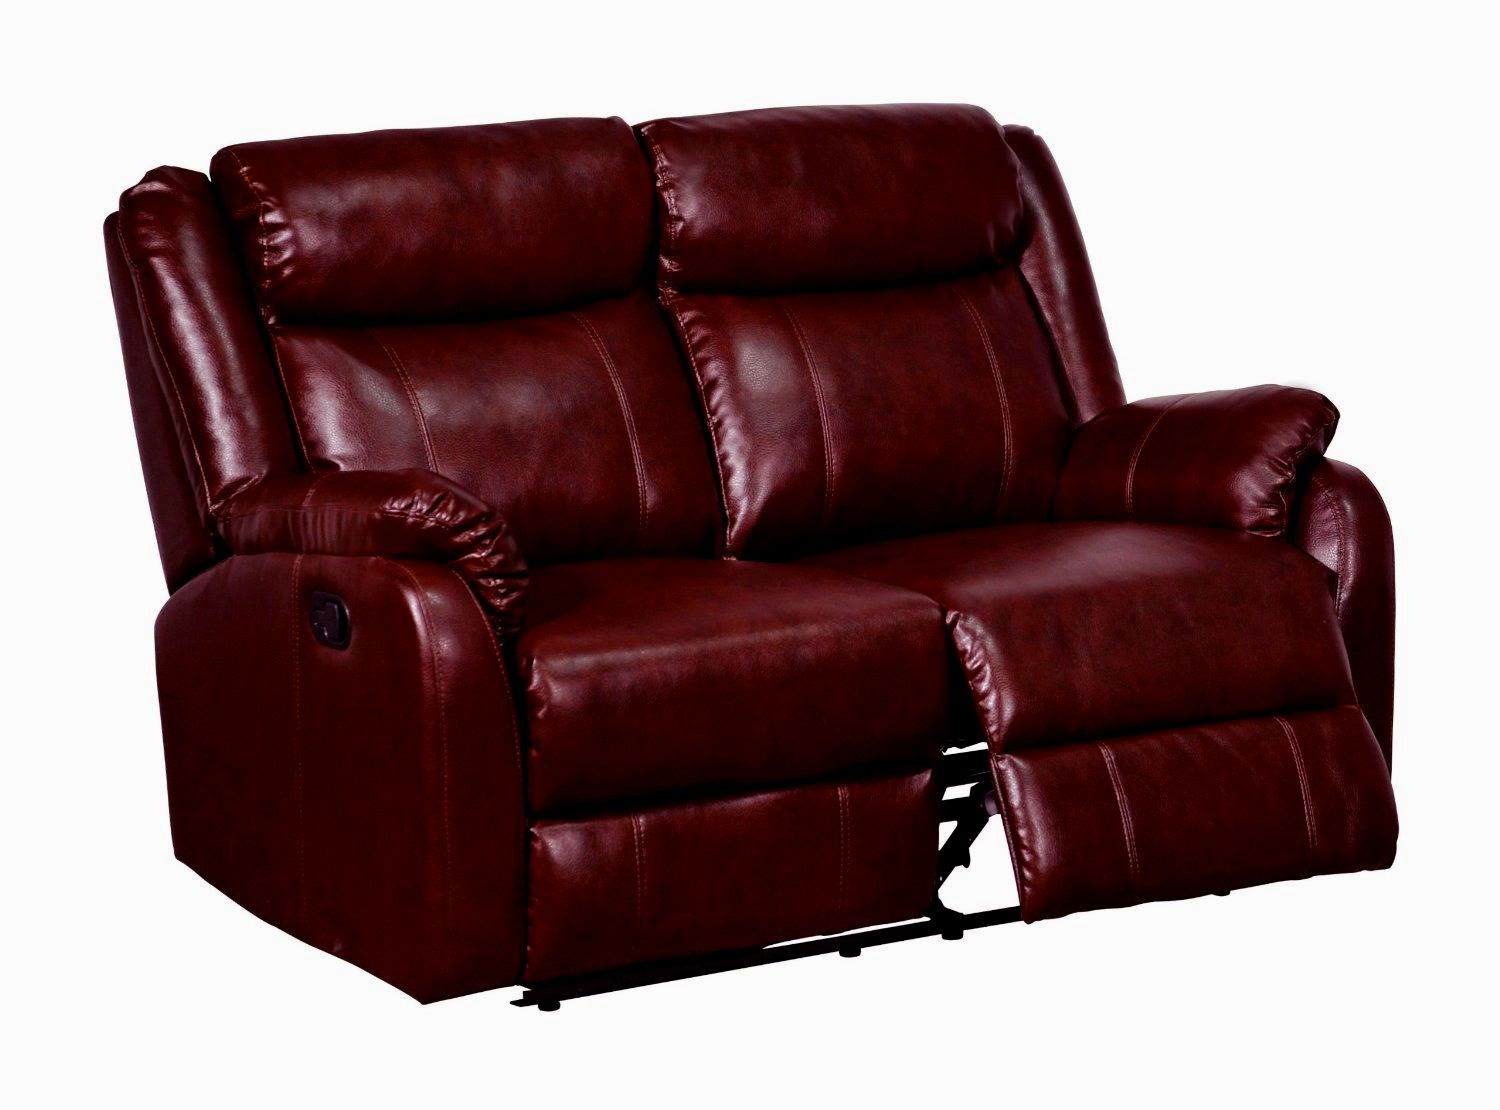 luxury sofas for sale cheap photo-Beautiful sofas for Sale Cheap Pattern